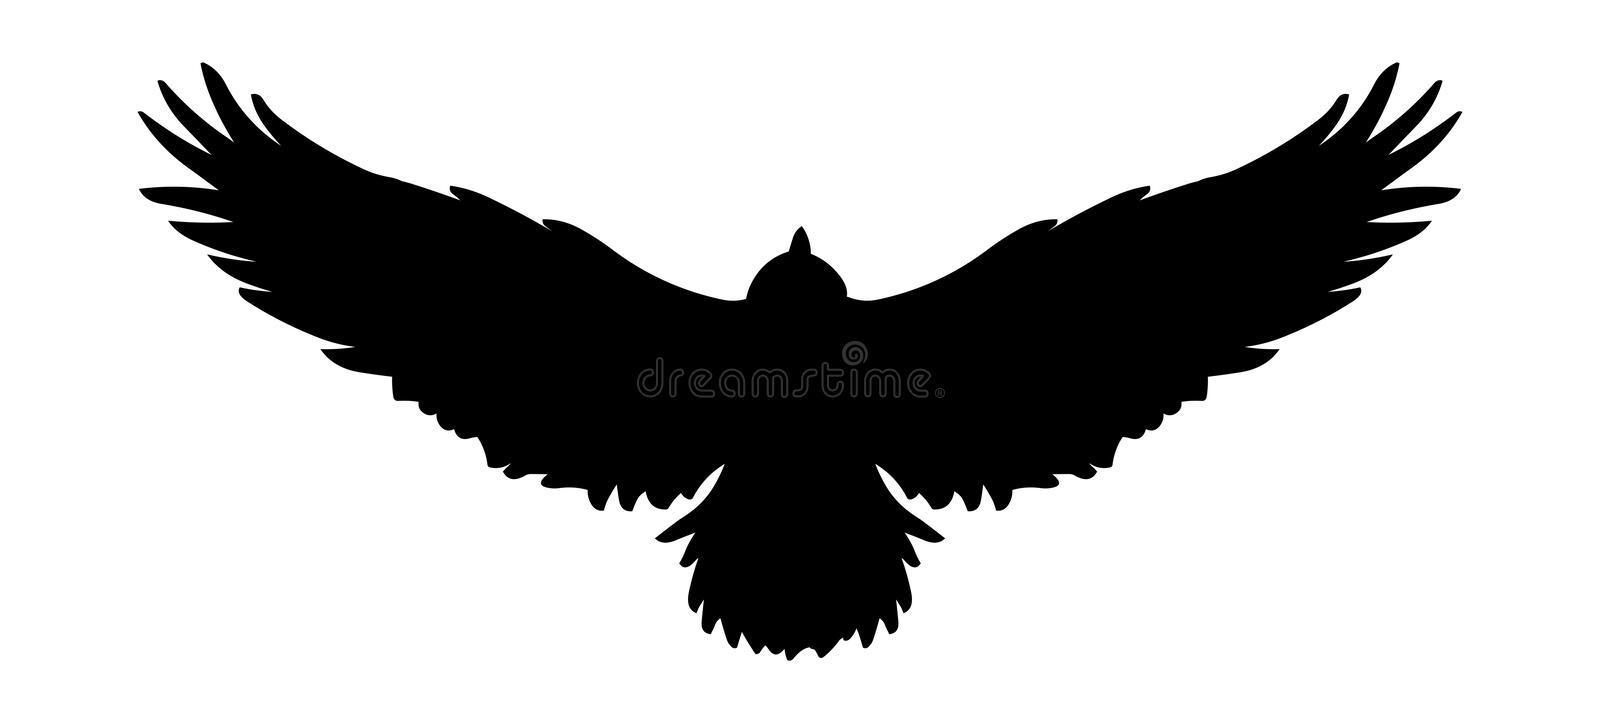 Flying bird icon logo, Vector eagle silhouette.Falcon illustration royalty free illustration